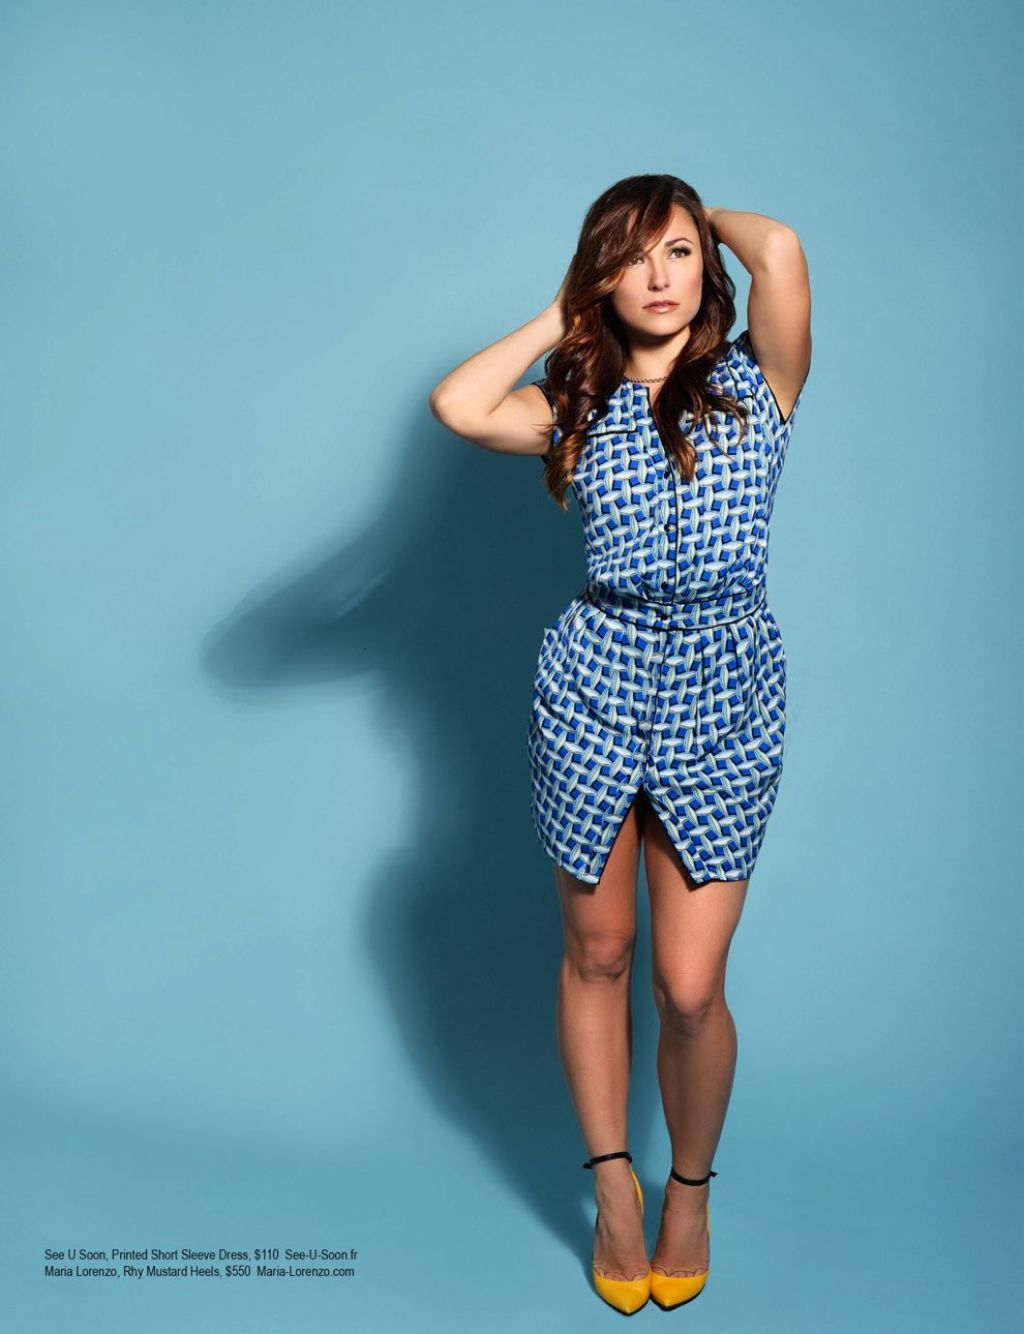 Briana Evigan Regard Magazine June 2014 Issue